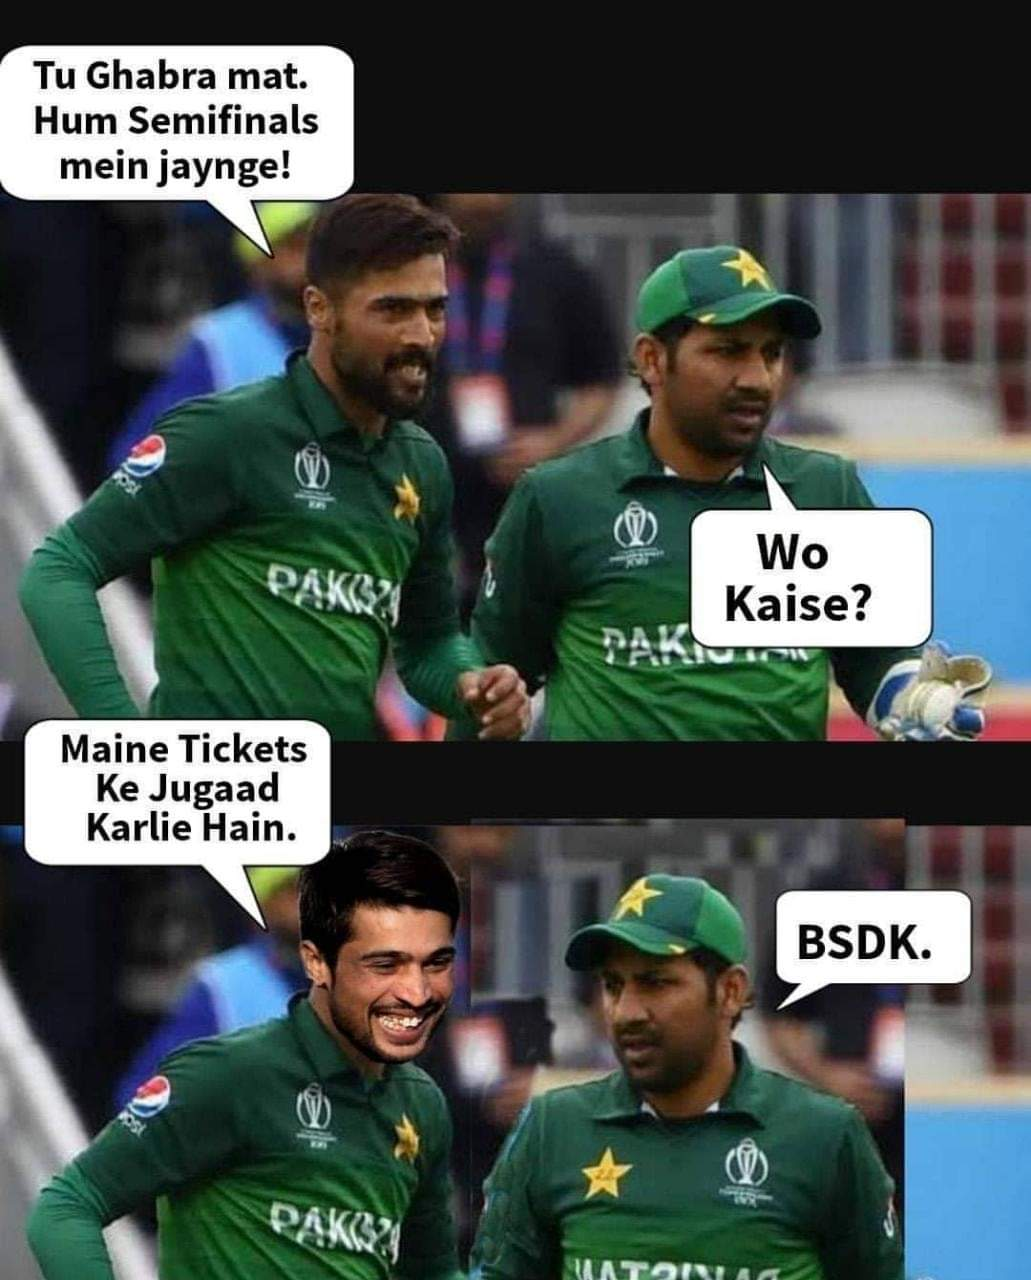 How pakistan will get into semi final